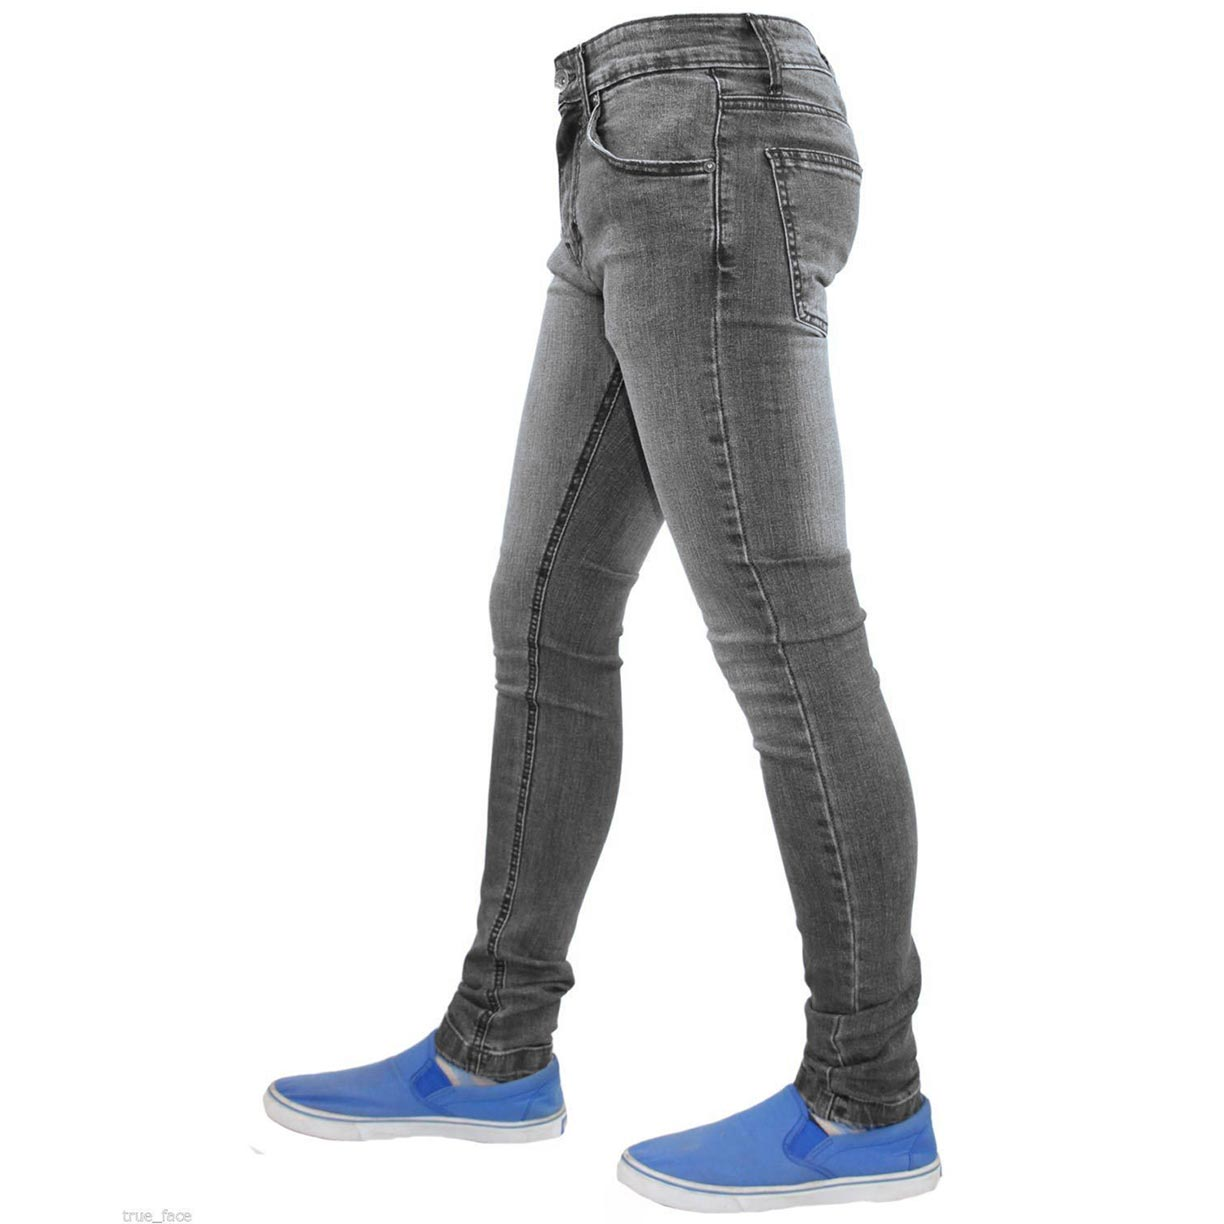 True Face Skinny Jeans TF021 Grey